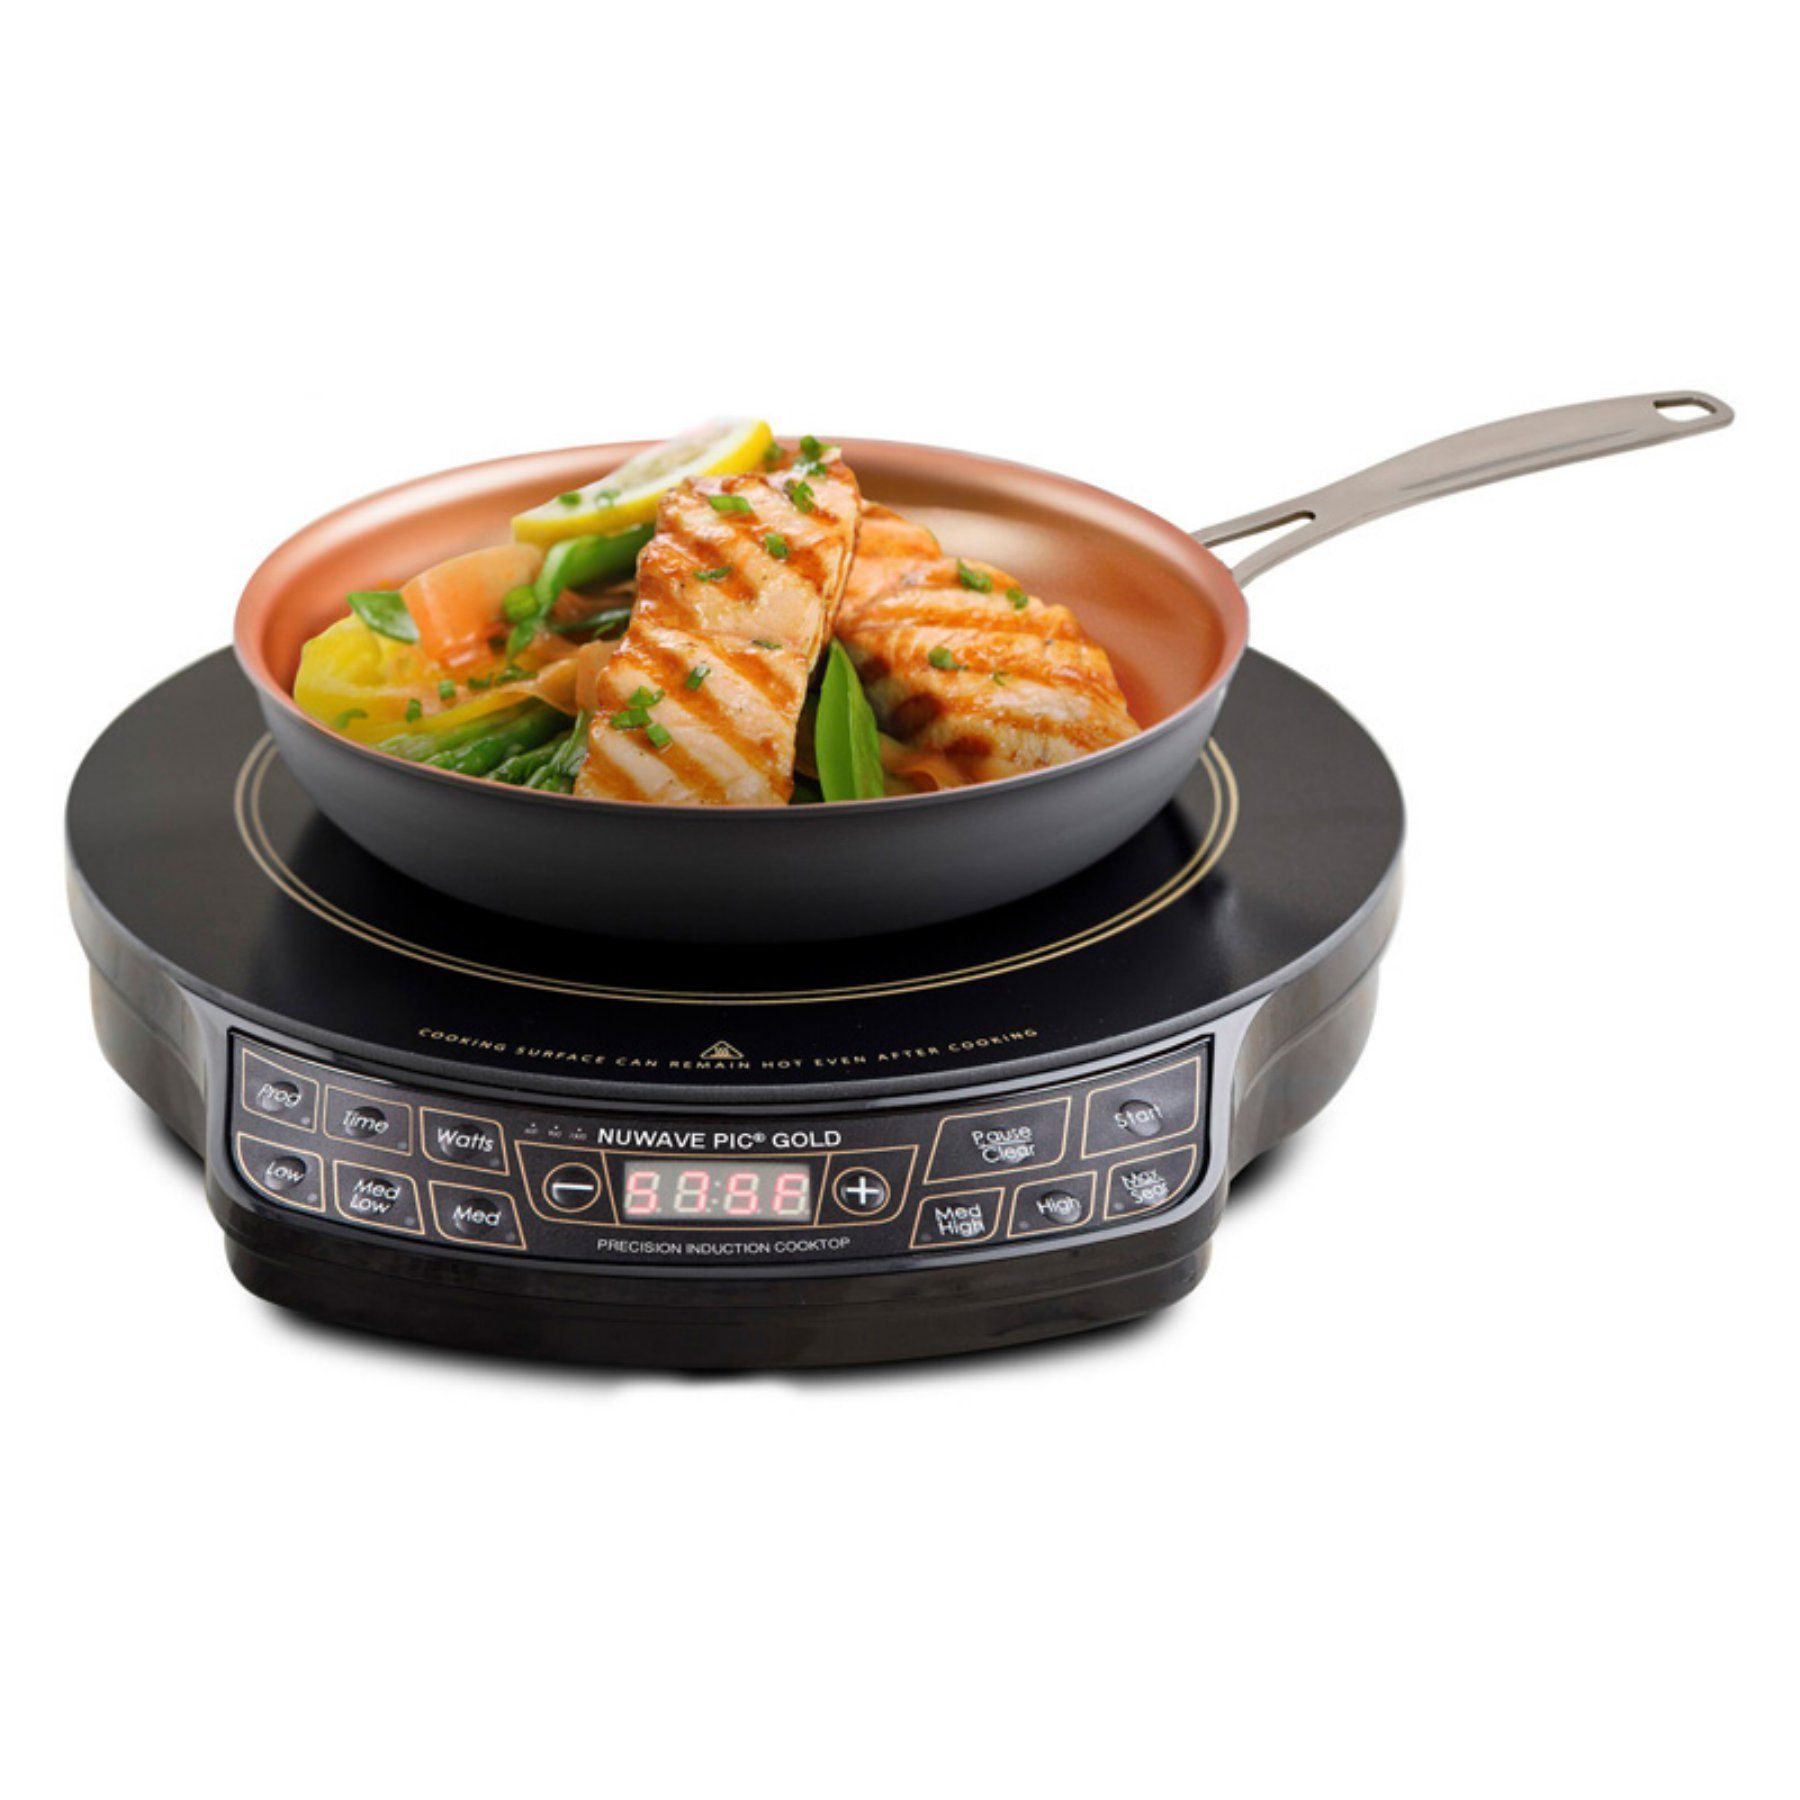 nuwave 30242 pic gold precision induction cooktop with 10 5 in fry